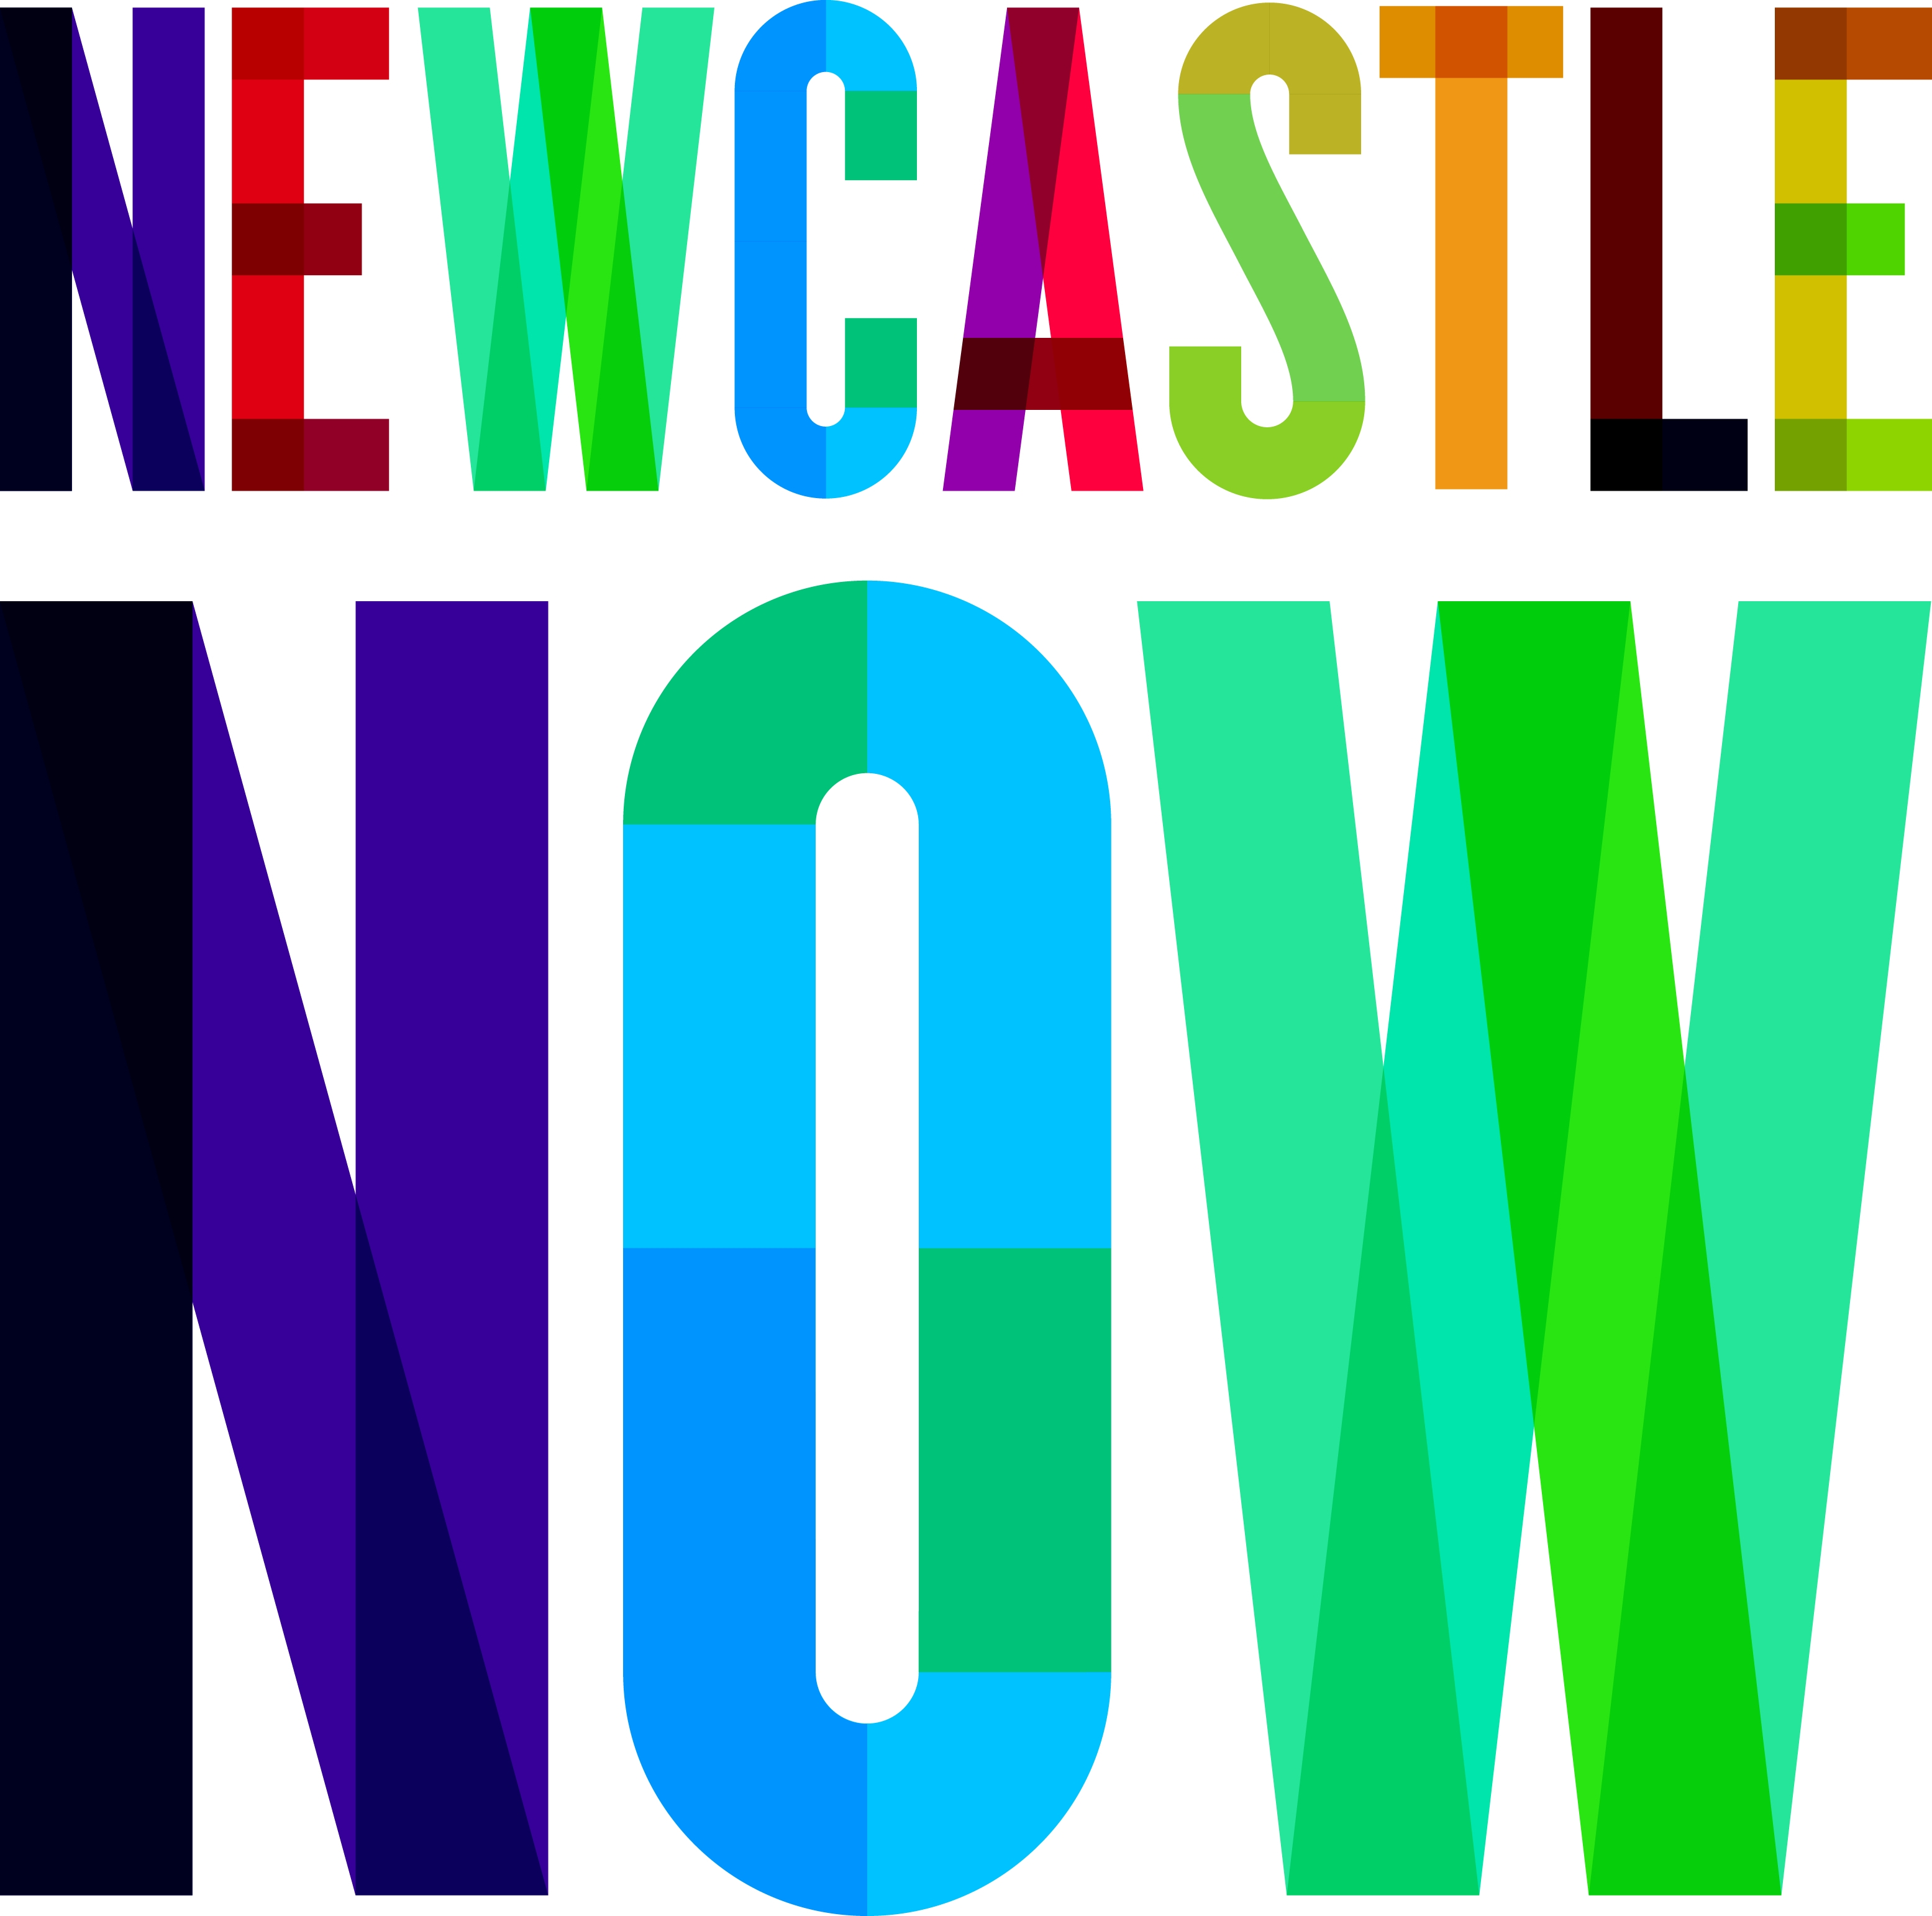 Newcastle - A City for People